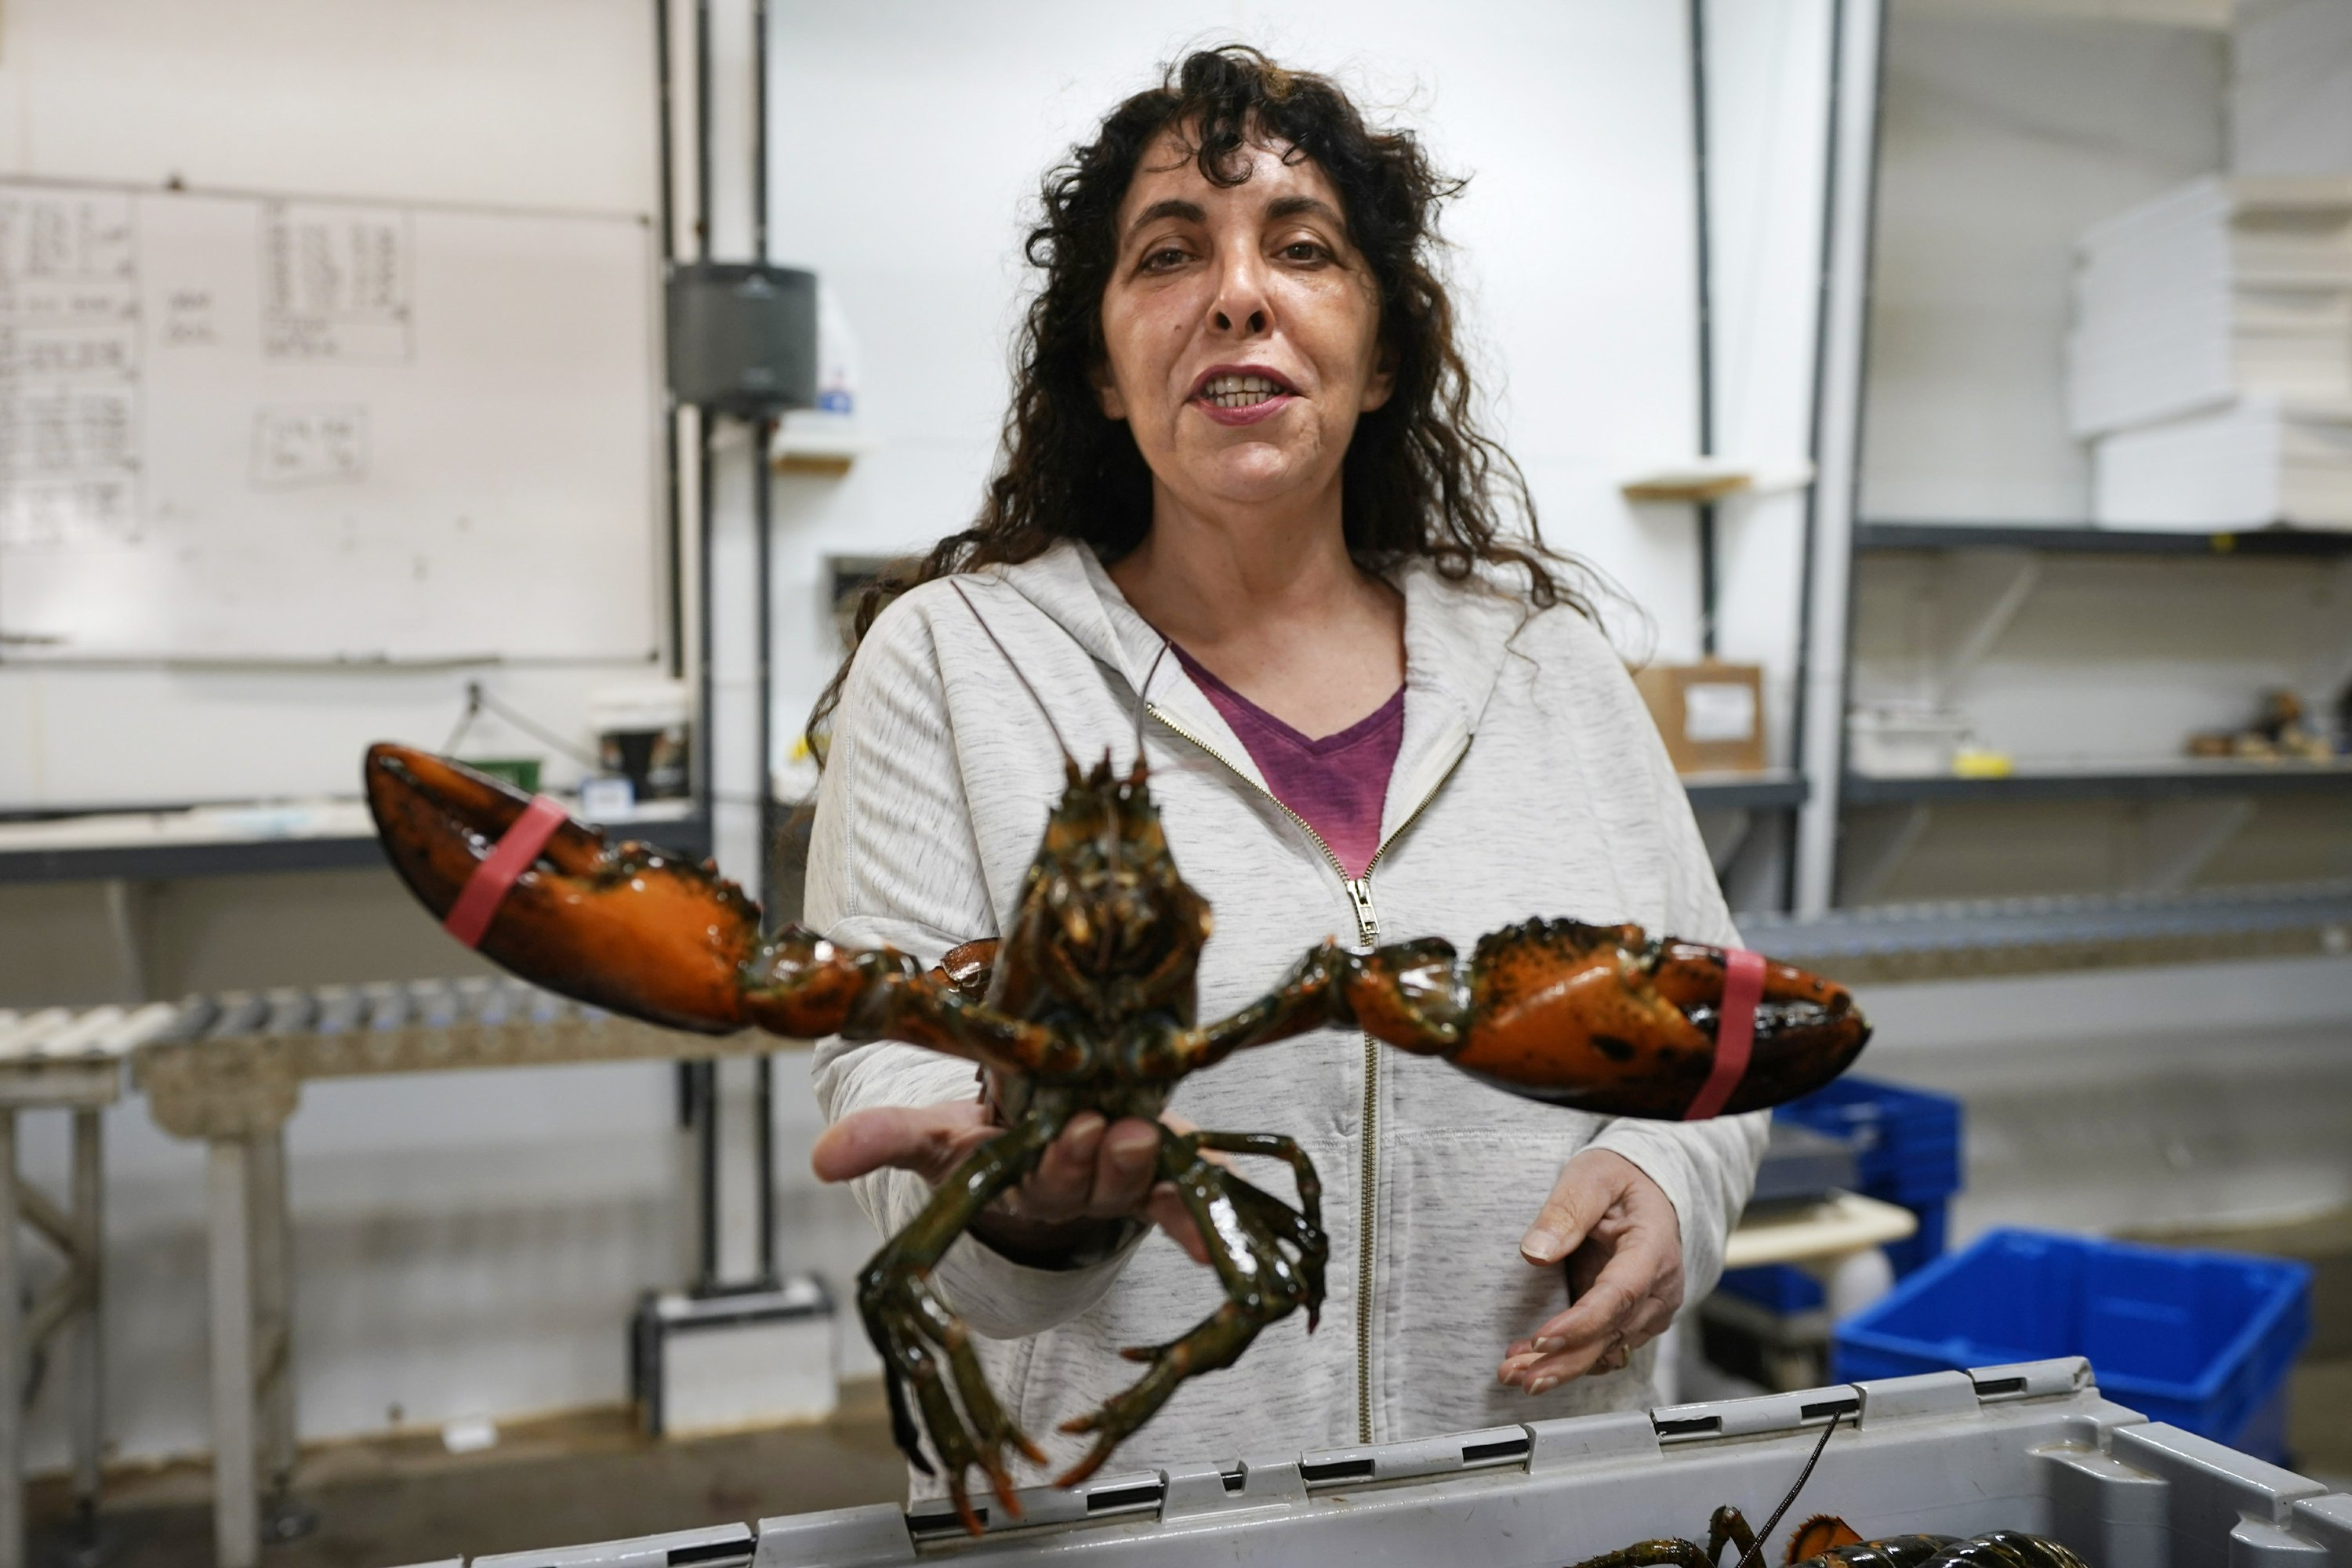 Lobster biz hopes for stability after tumultuous Trump era – Associated Press